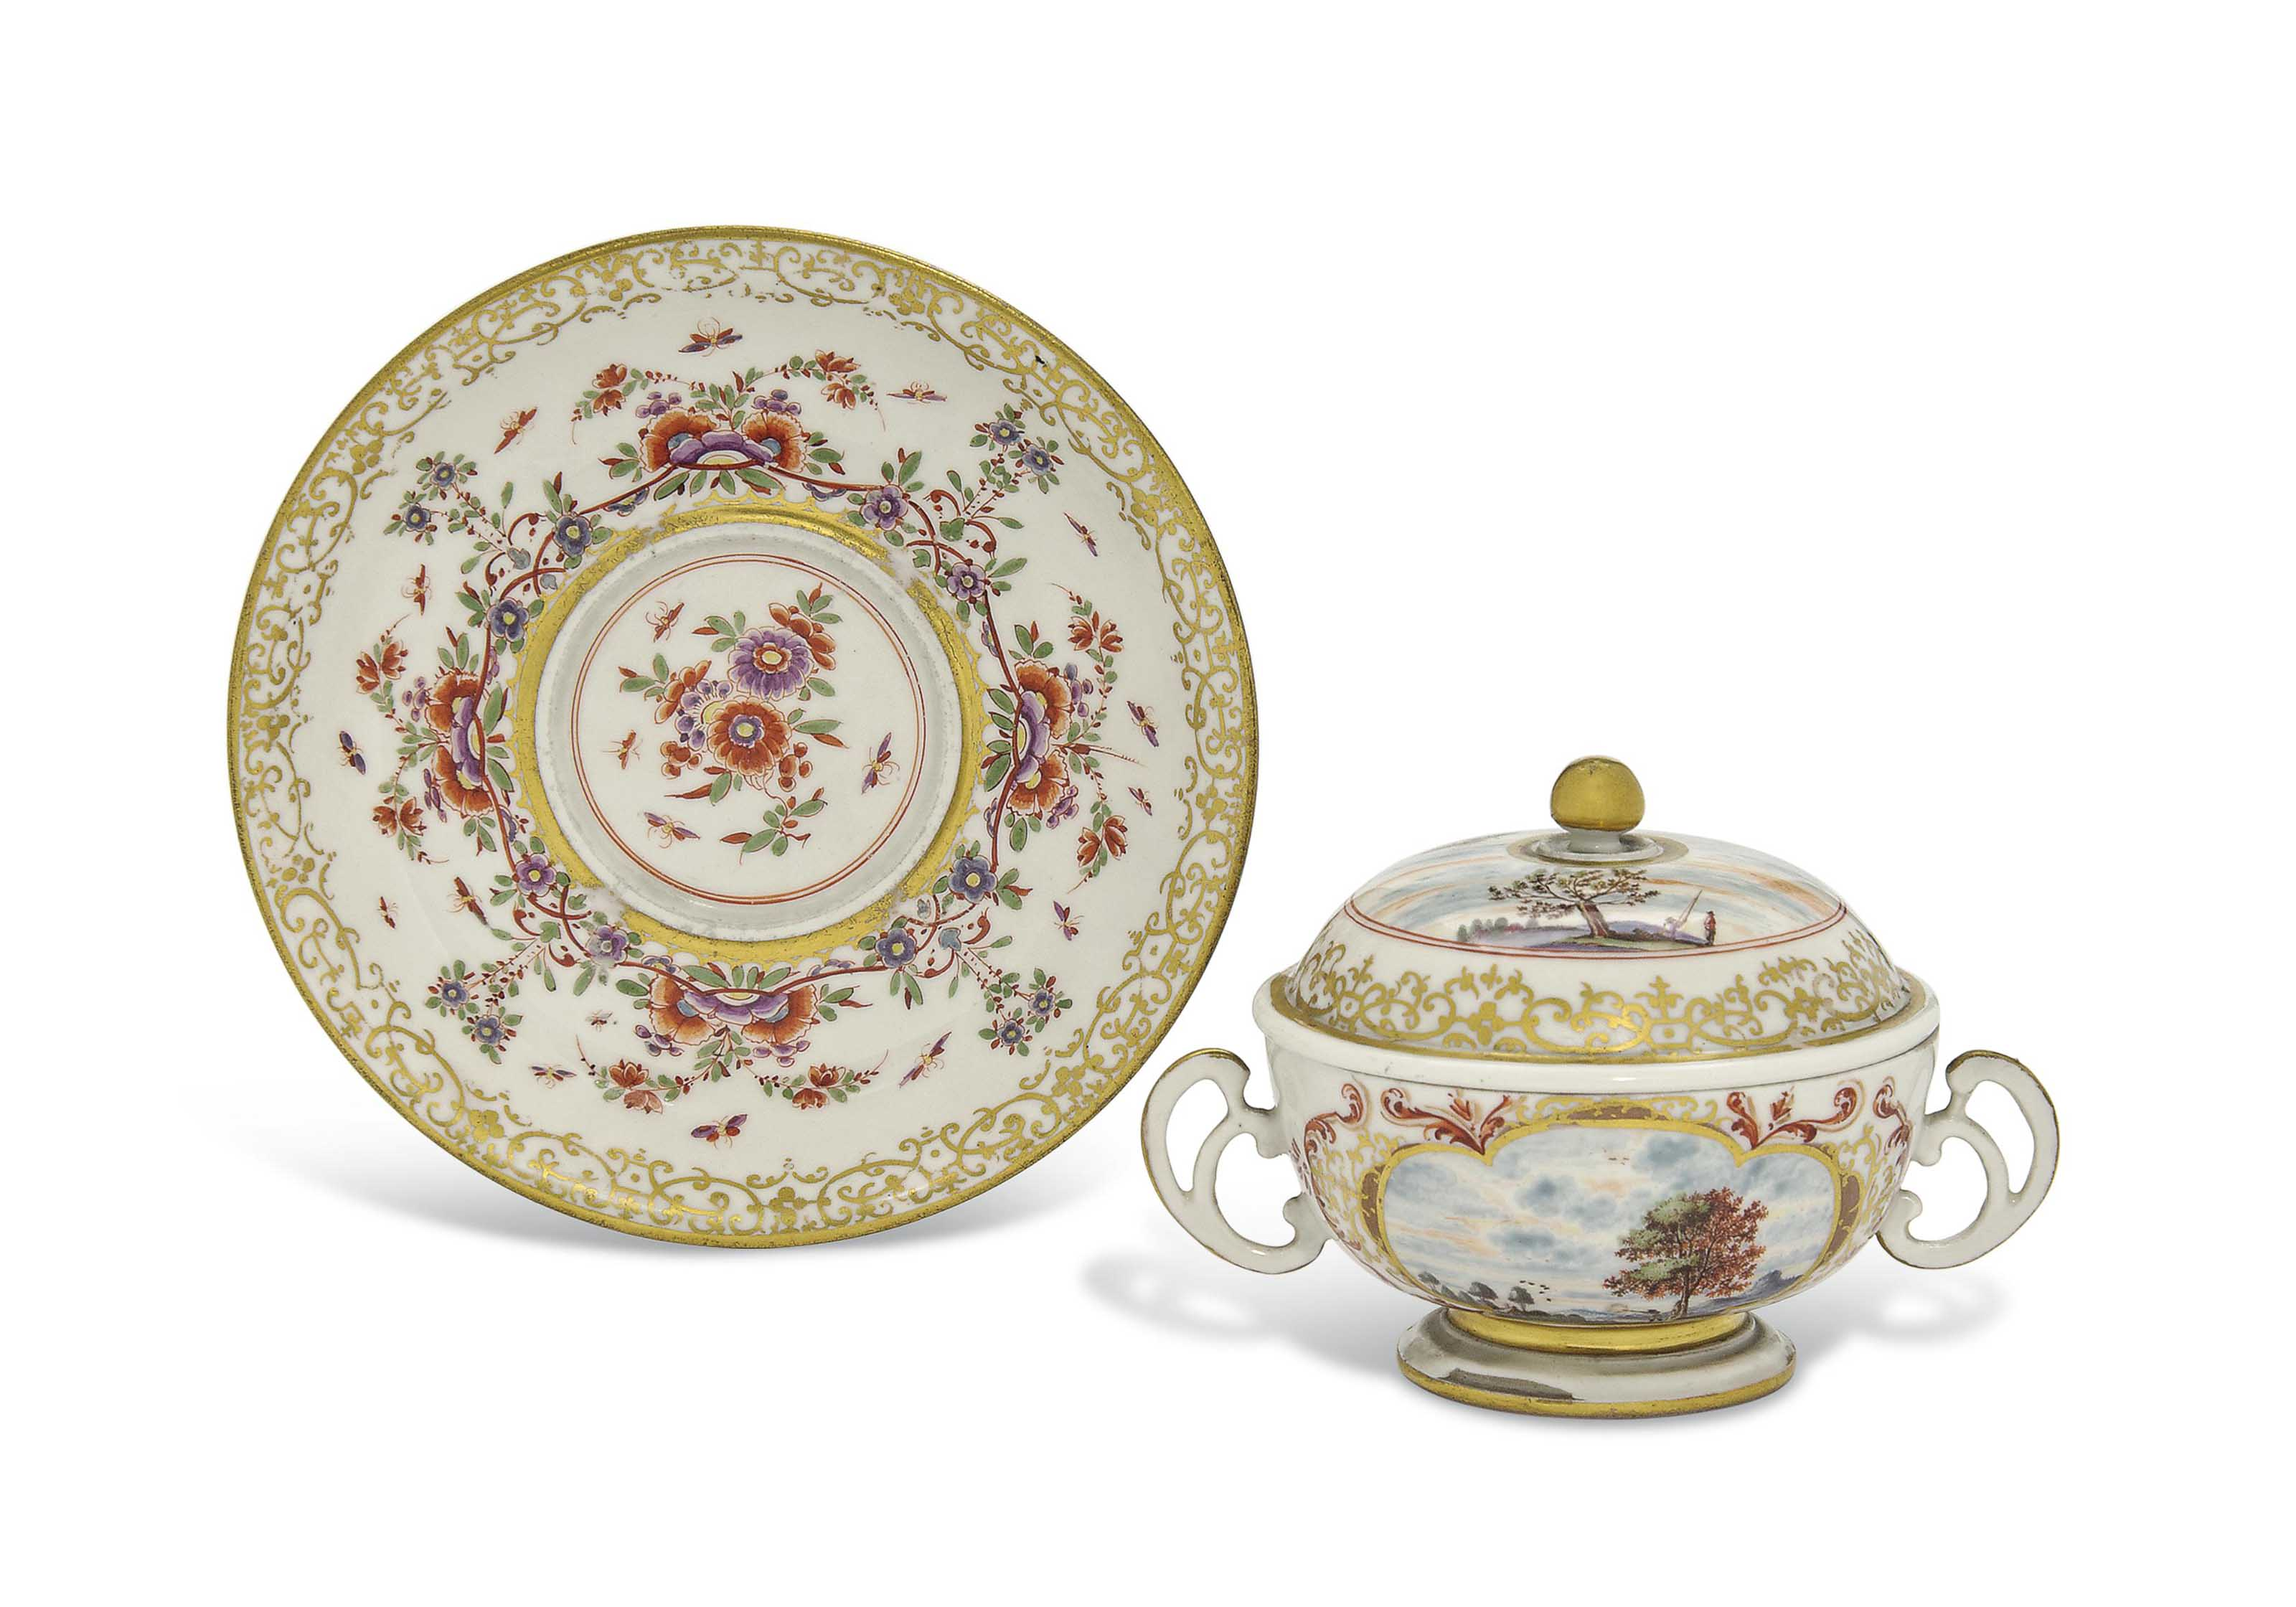 A MEISSEN CIRCULAR TWO-HANDLED